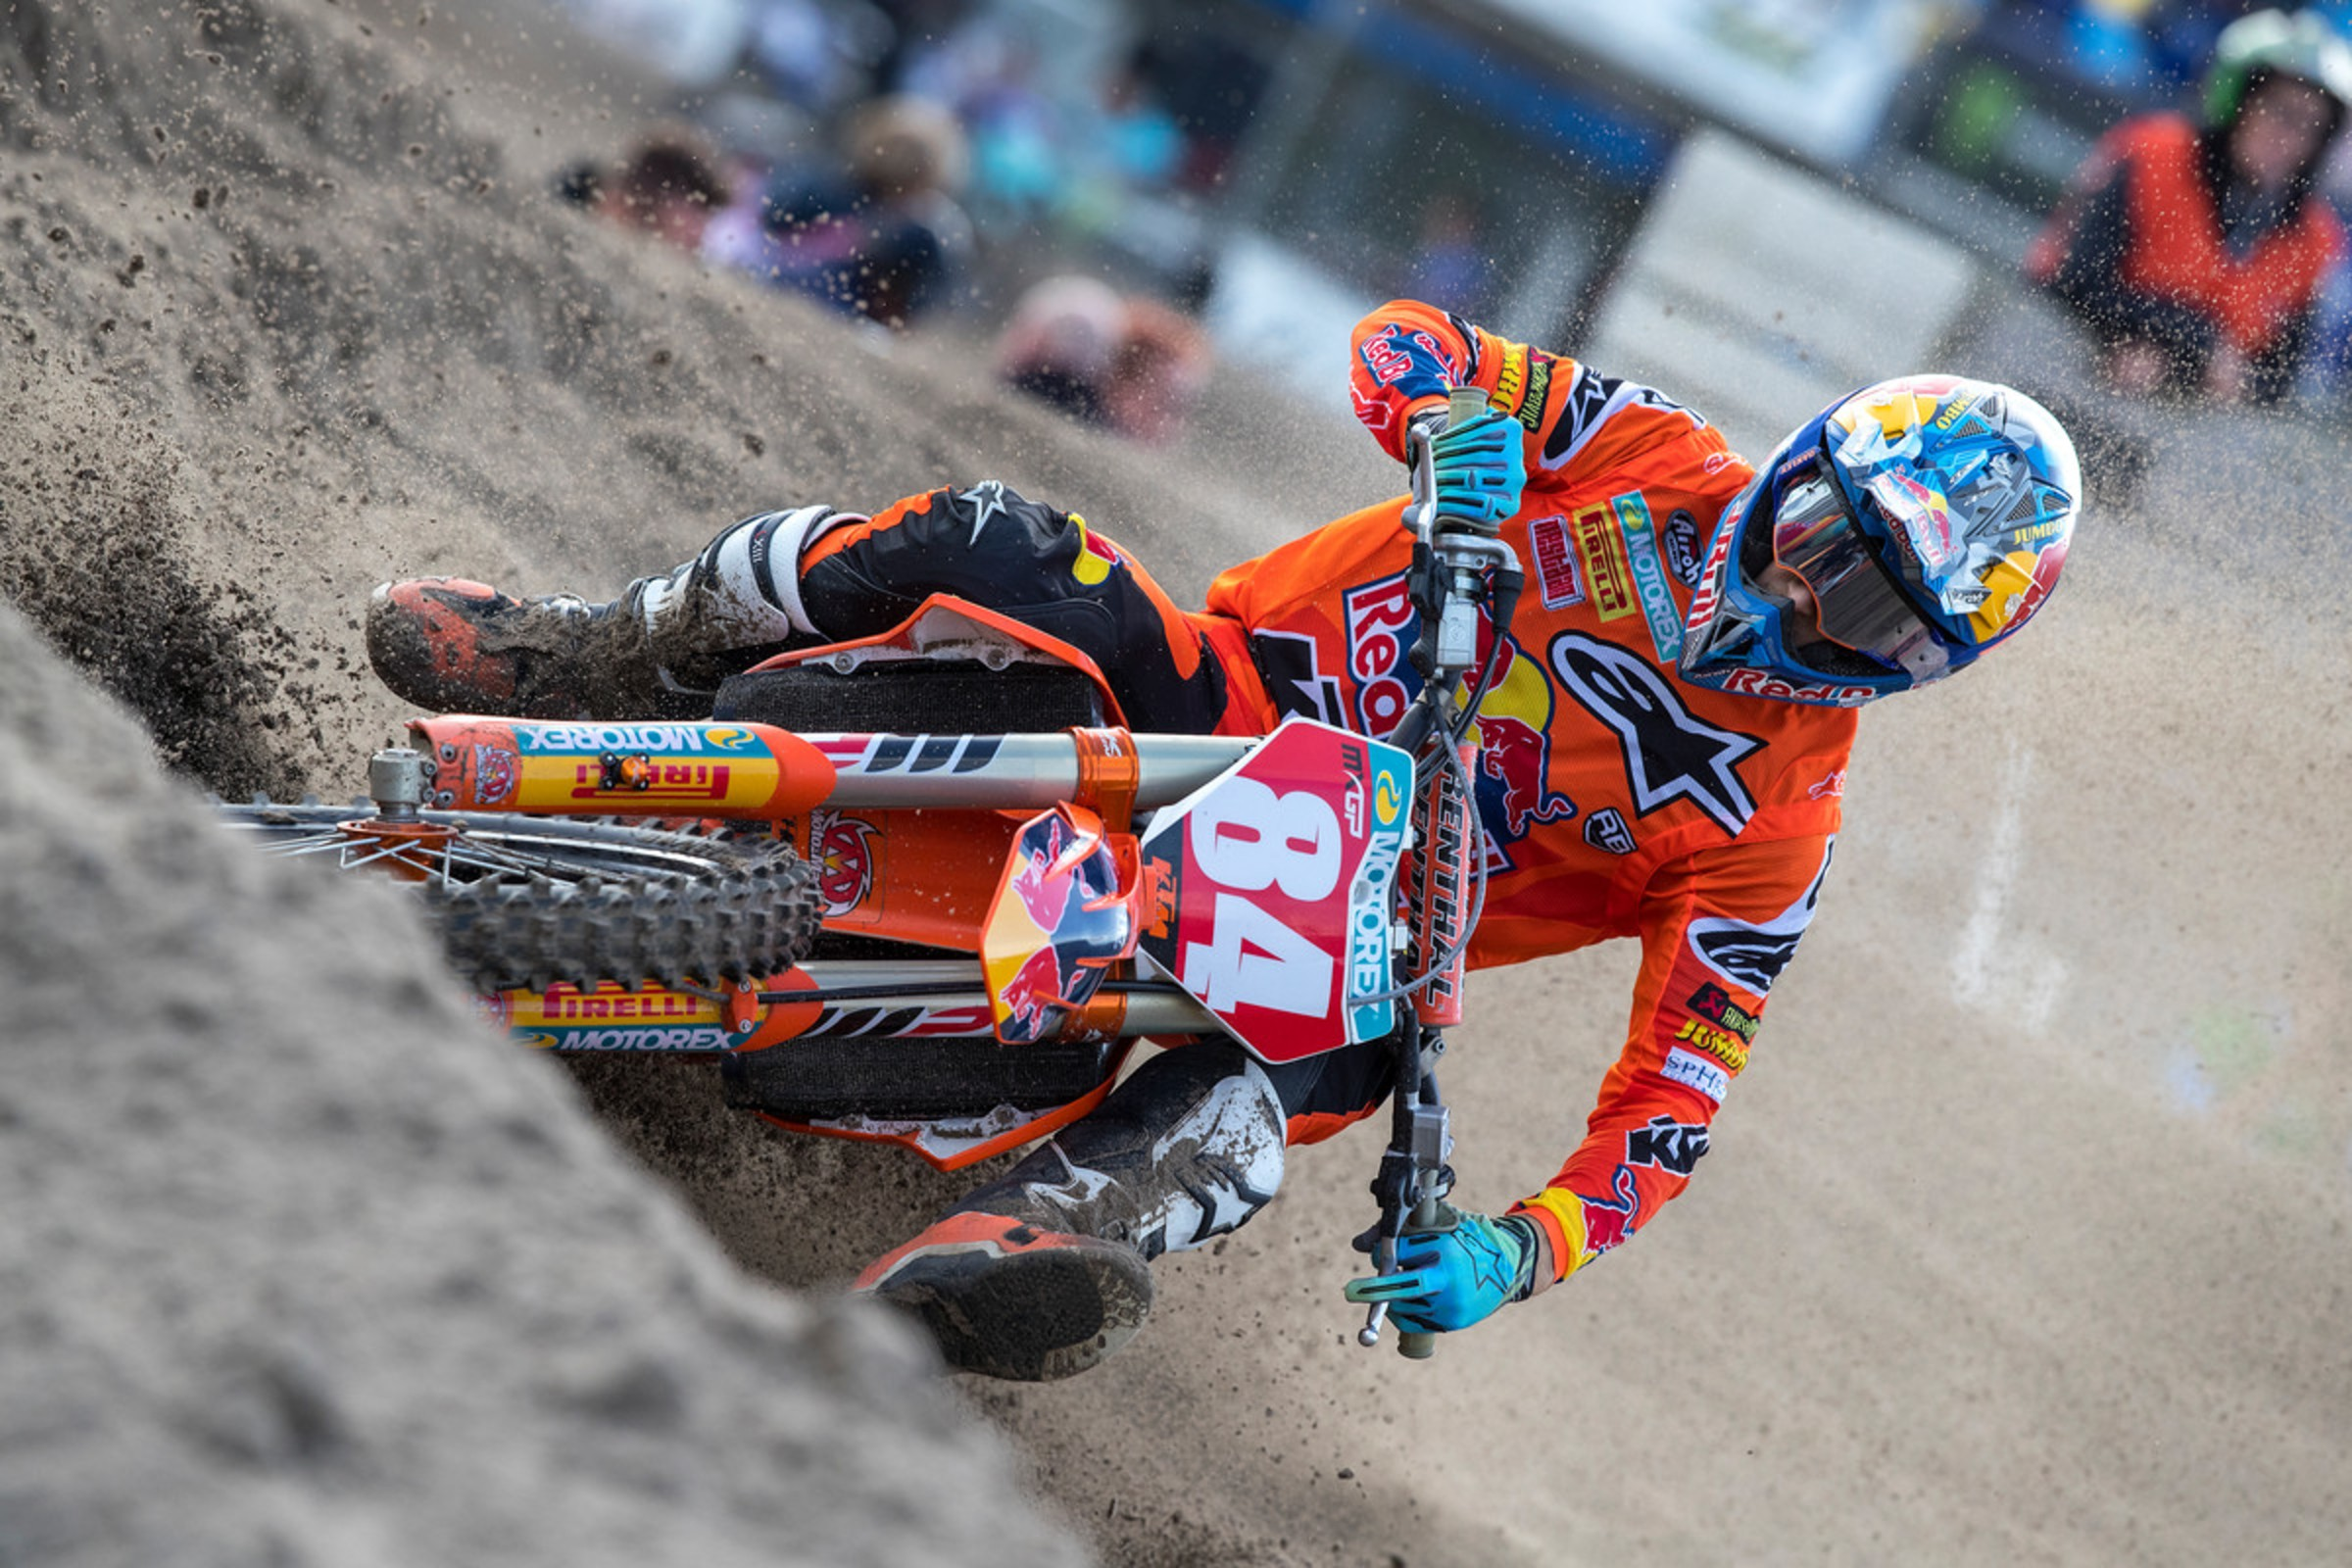 Jeffrey Herlings Clinches MXGP World Championship at Assen